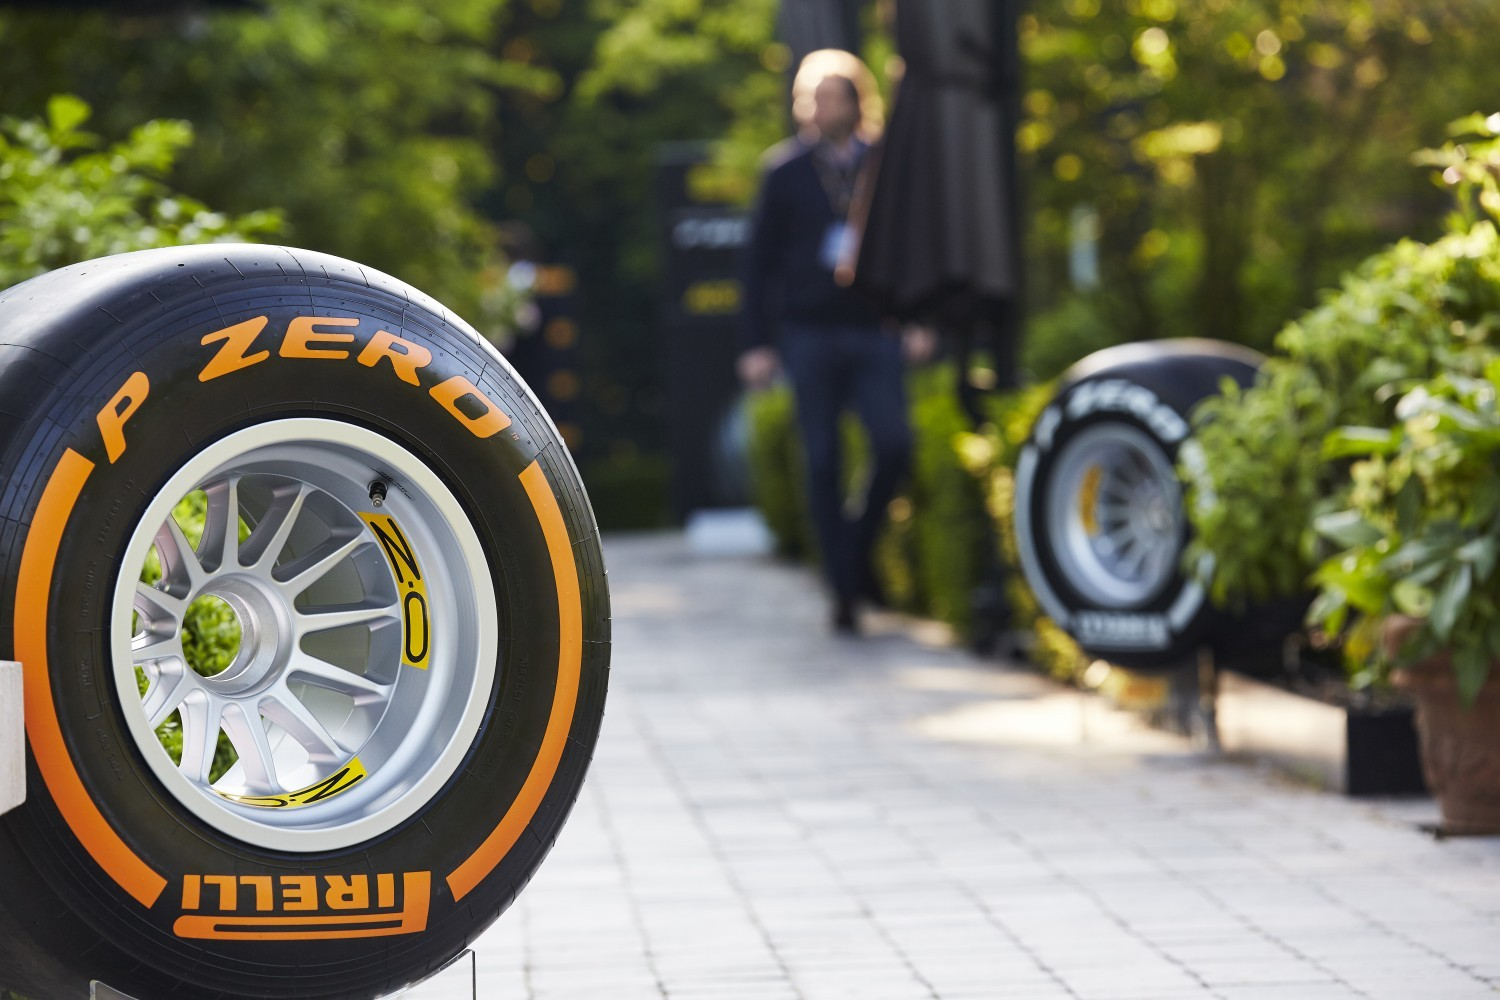 Pirelli_Introducing_P-Zero_Reims_DM_210